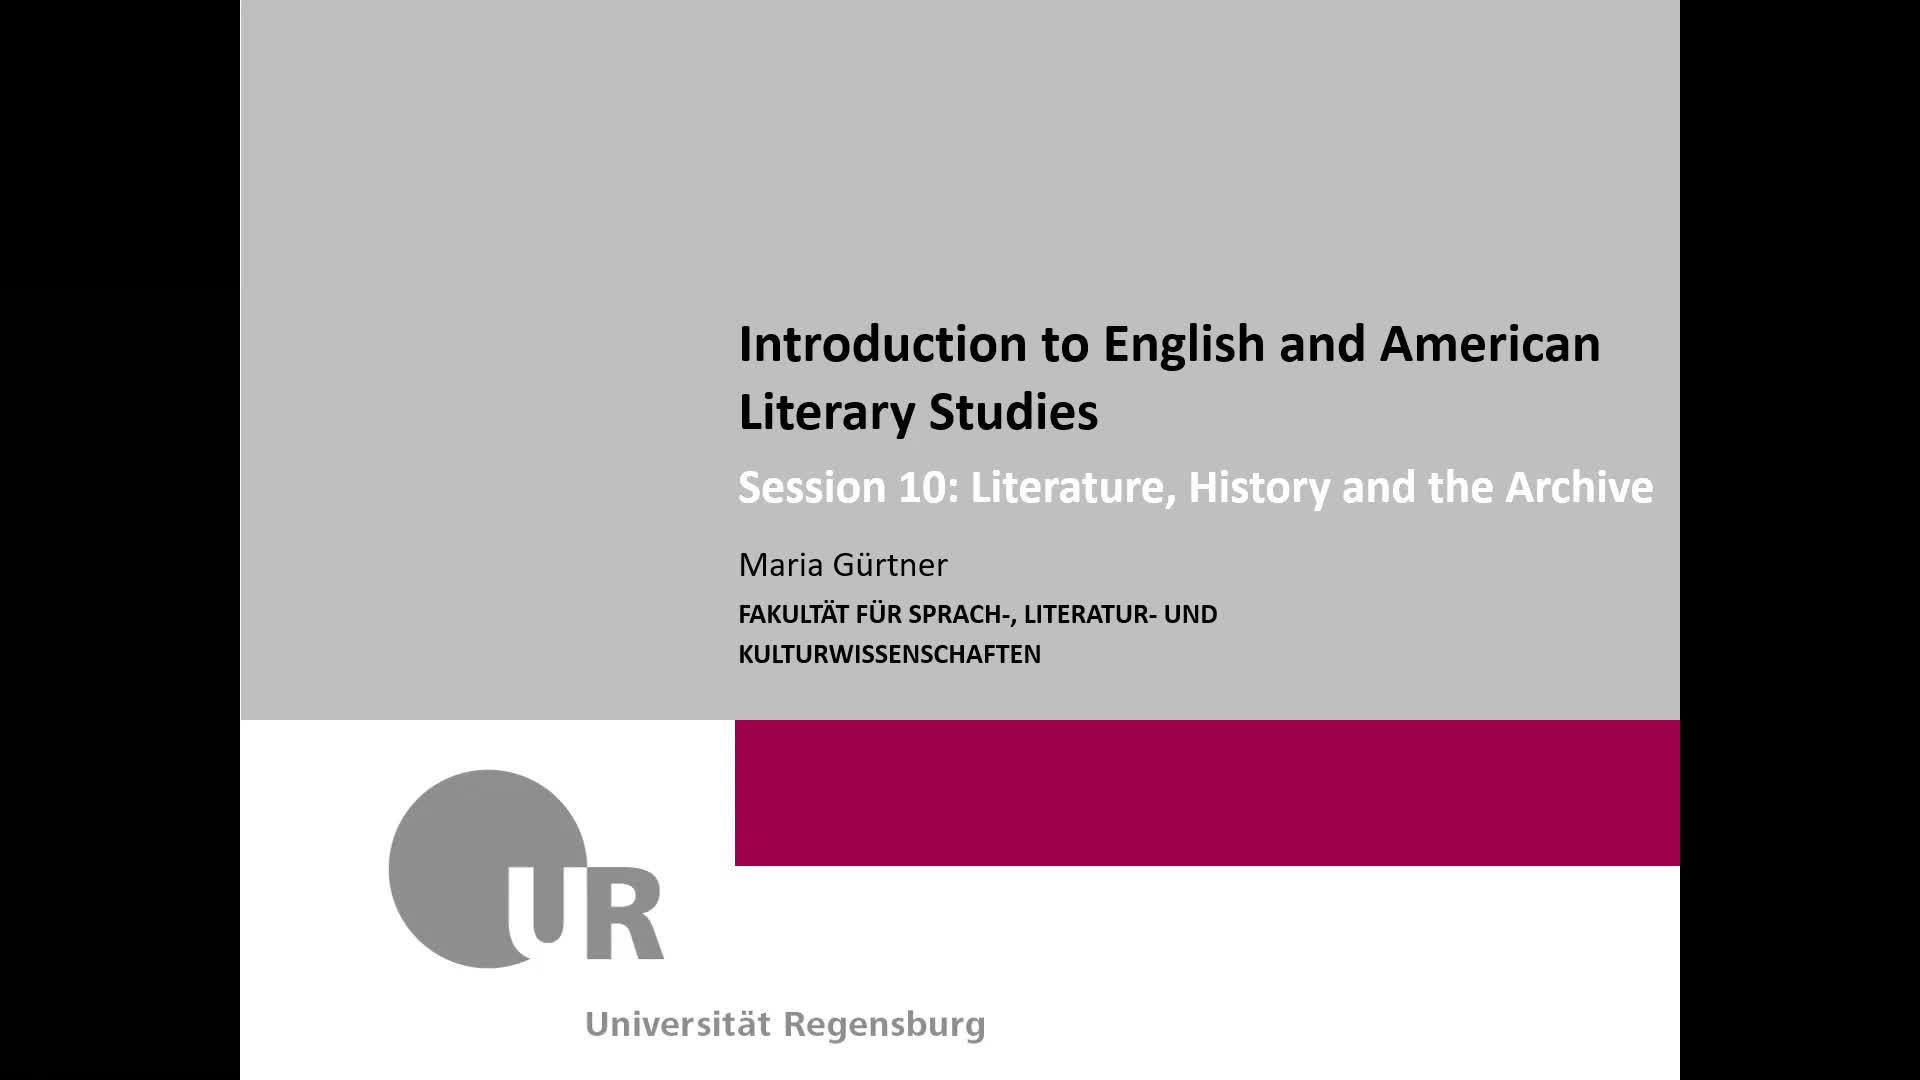 Session 10: Literature, History and the Archive